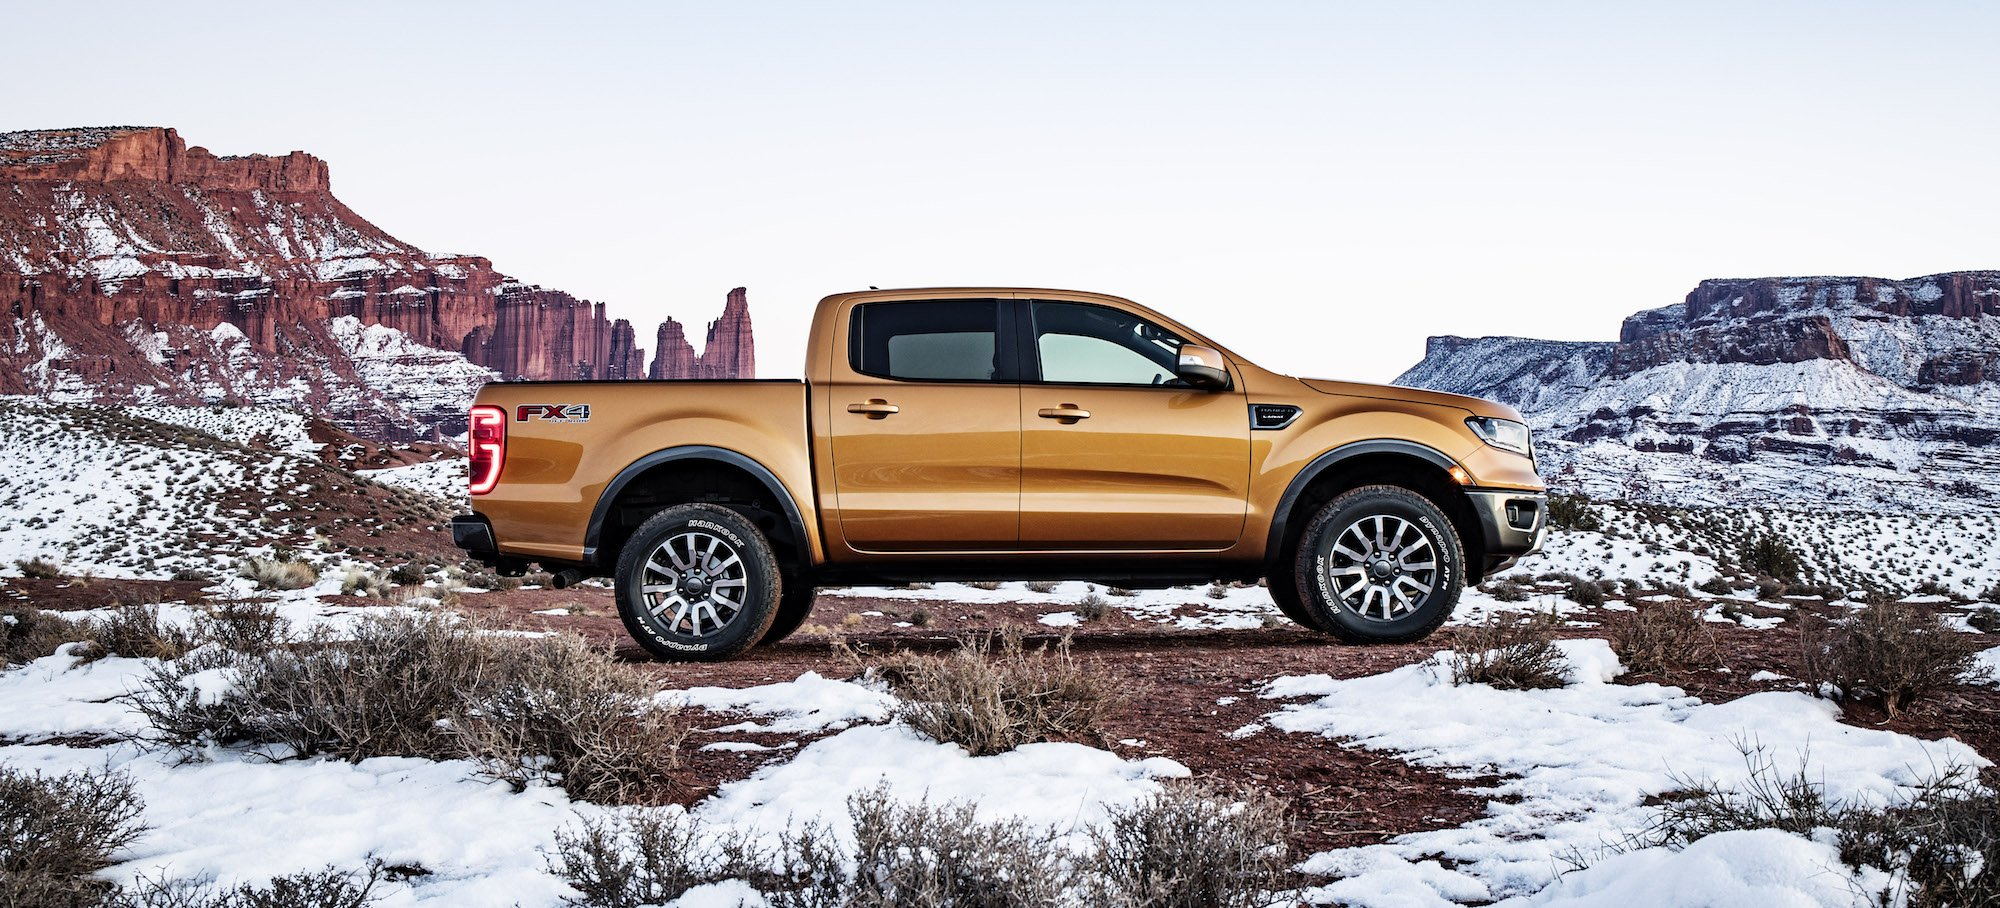 2019 Ford Ranger EMBARGOED DO NOT USE